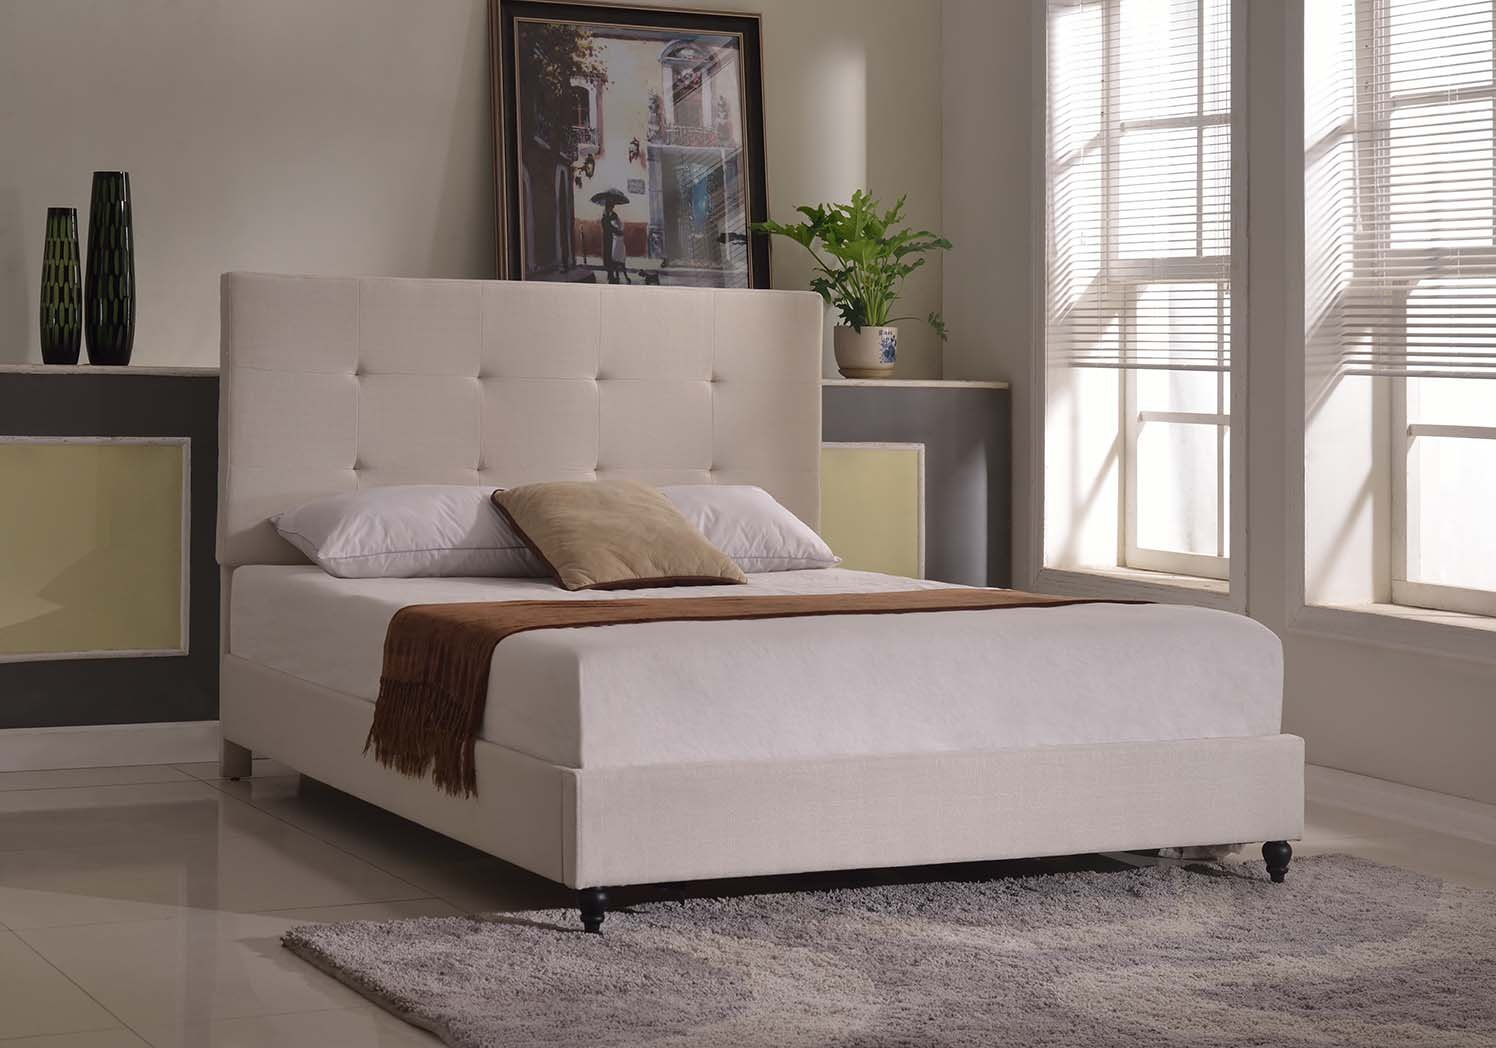 Life Home Cloth Light Beige Cream Linen Platform Bed with Slats Full – Complete Bed 5 Year Warranty Included